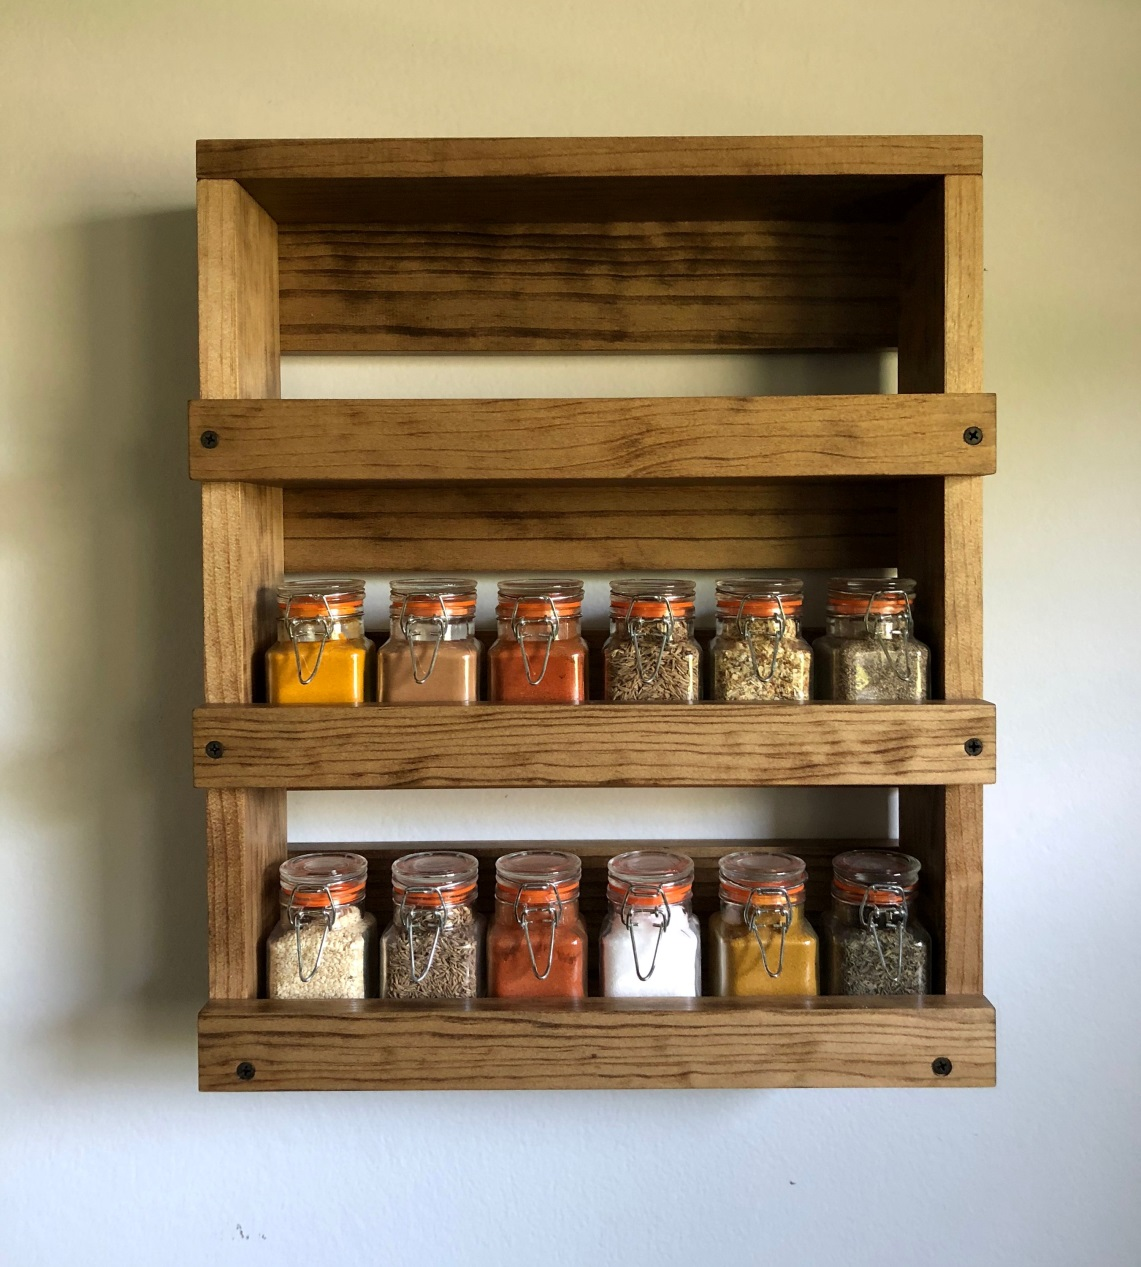 Diy Home Design Ideas: 30 Amazing DIY Wooden Projects For Home Decor Ideas